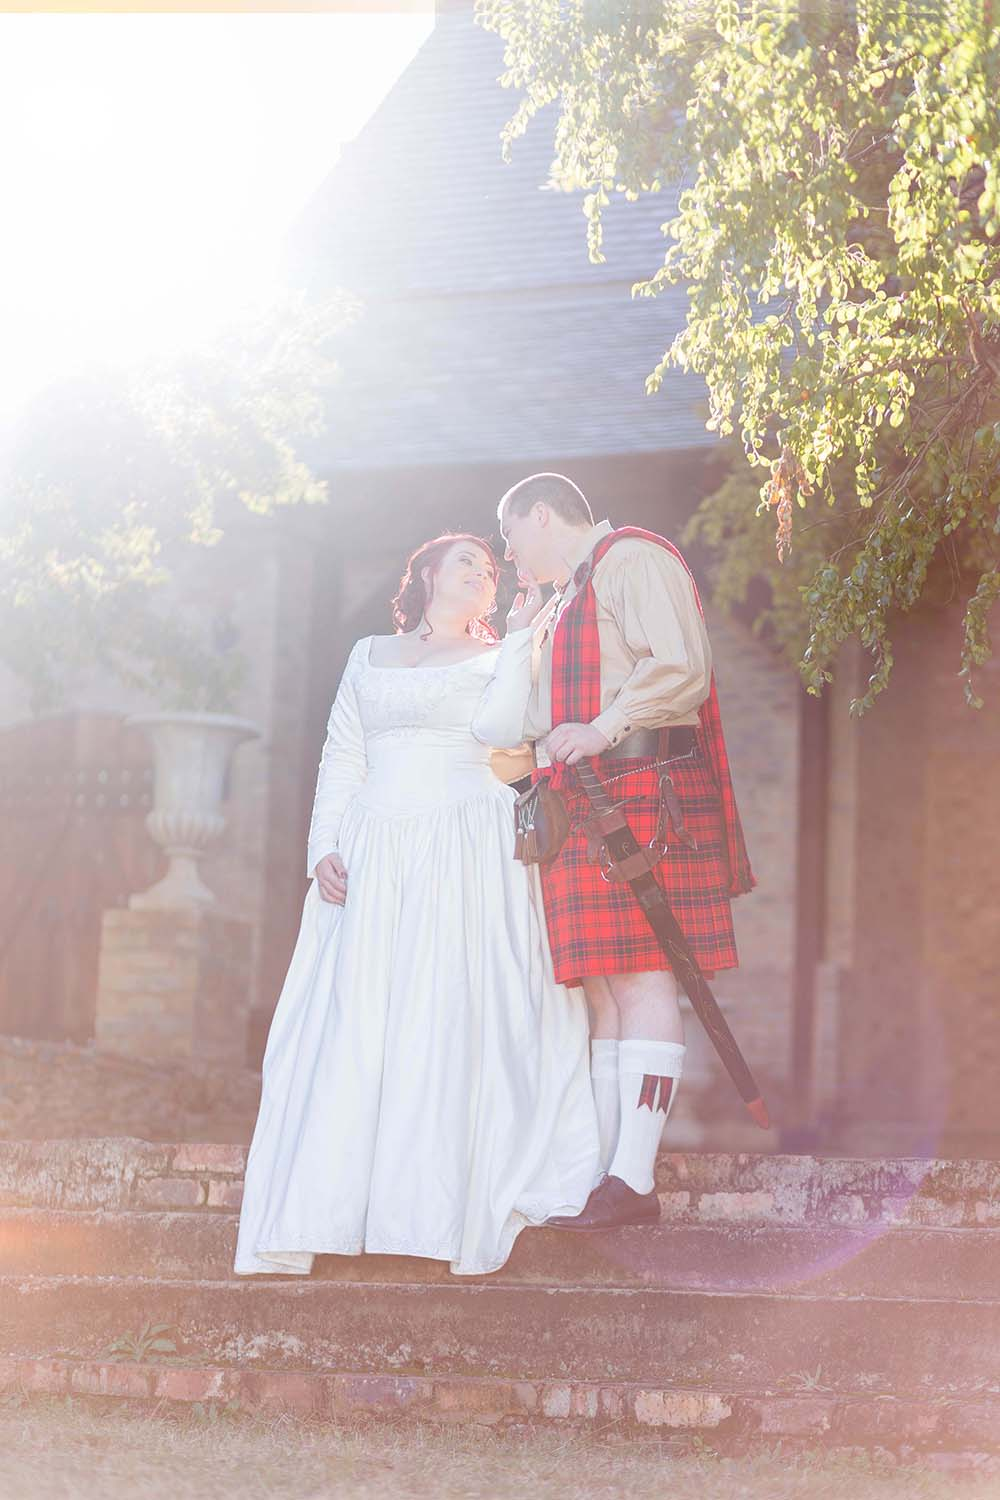 medieval-themed-wedding-medieval-wedding-dgr-photography-castle-wedding-96